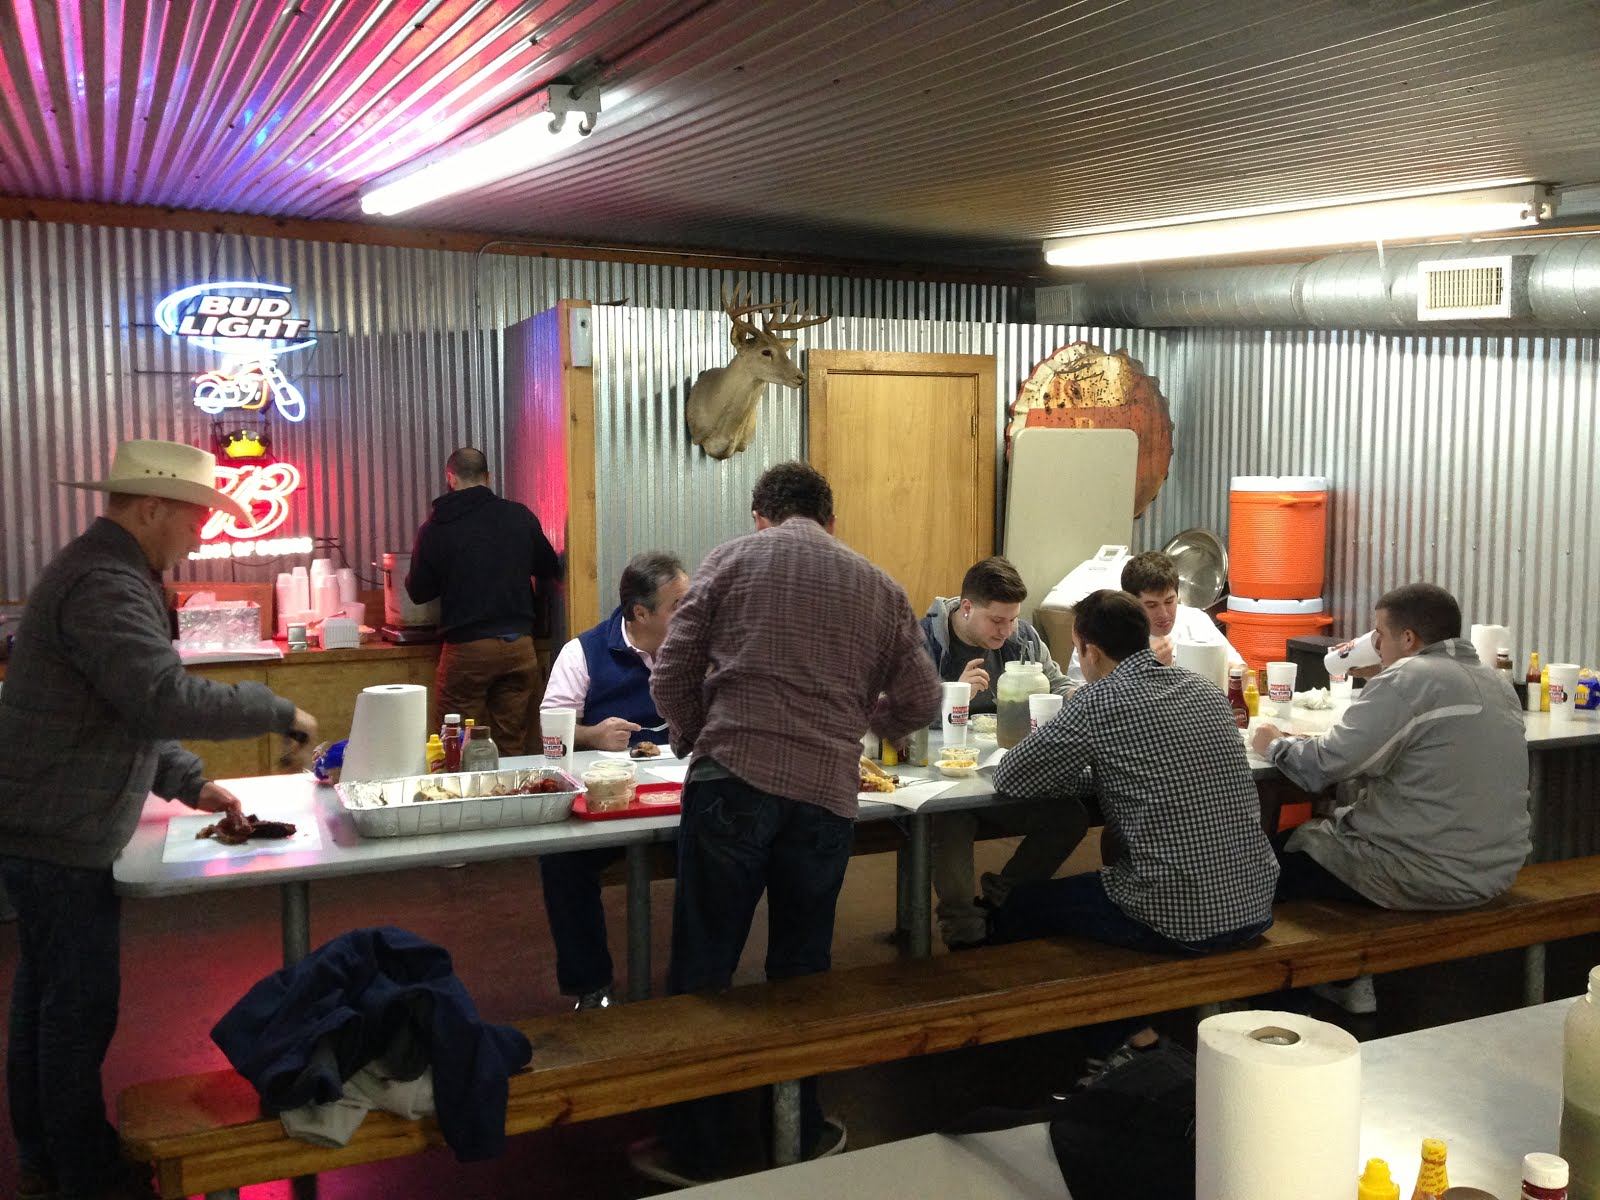 man up tales of texas bbq stop 5 of our december texas q tour